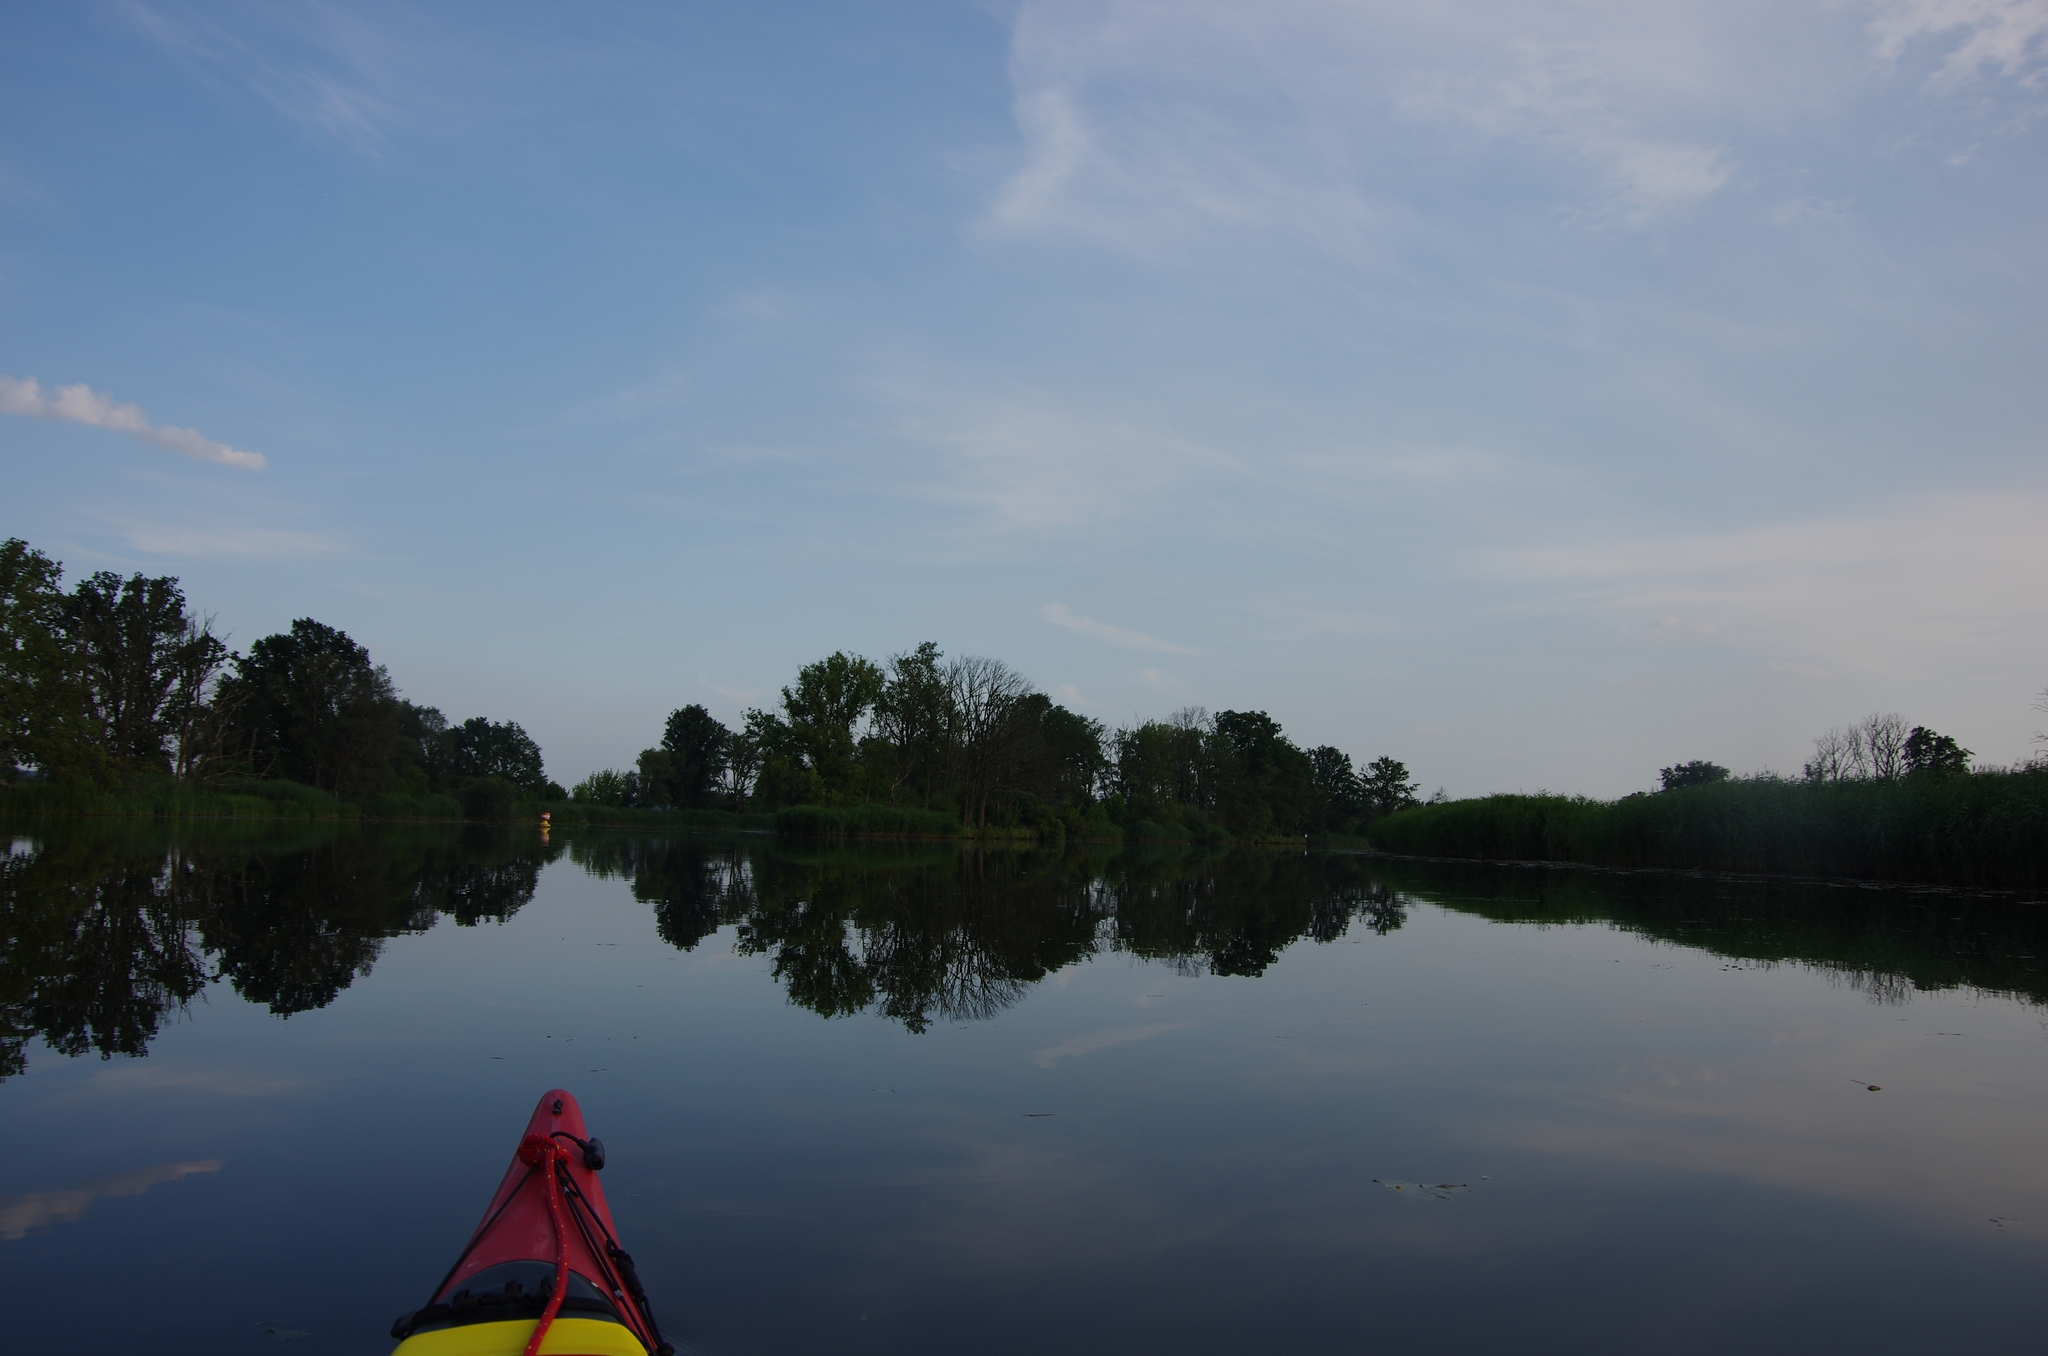 kayaking-odra-east-and-west_18-06-40_25-07-2016